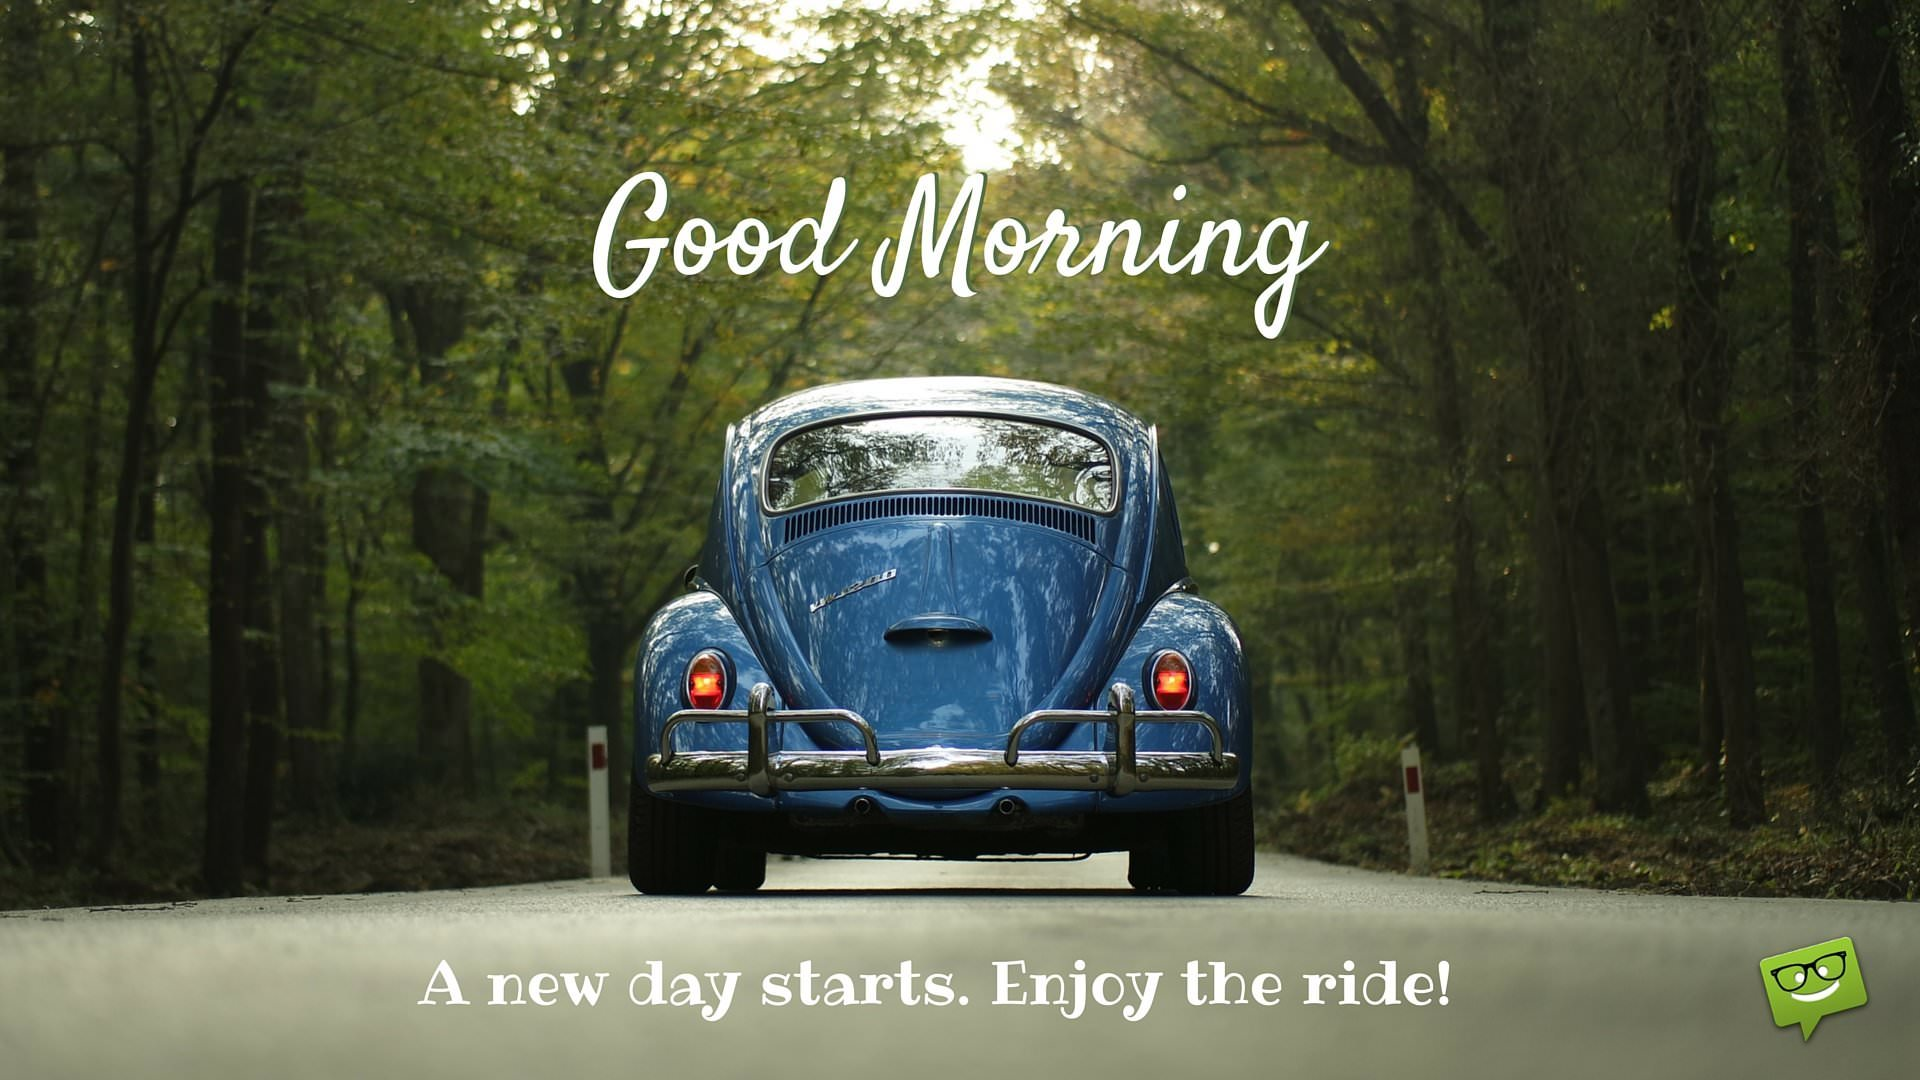 Good Morning A New Day Starts - Good Morning With Cars - HD Wallpaper